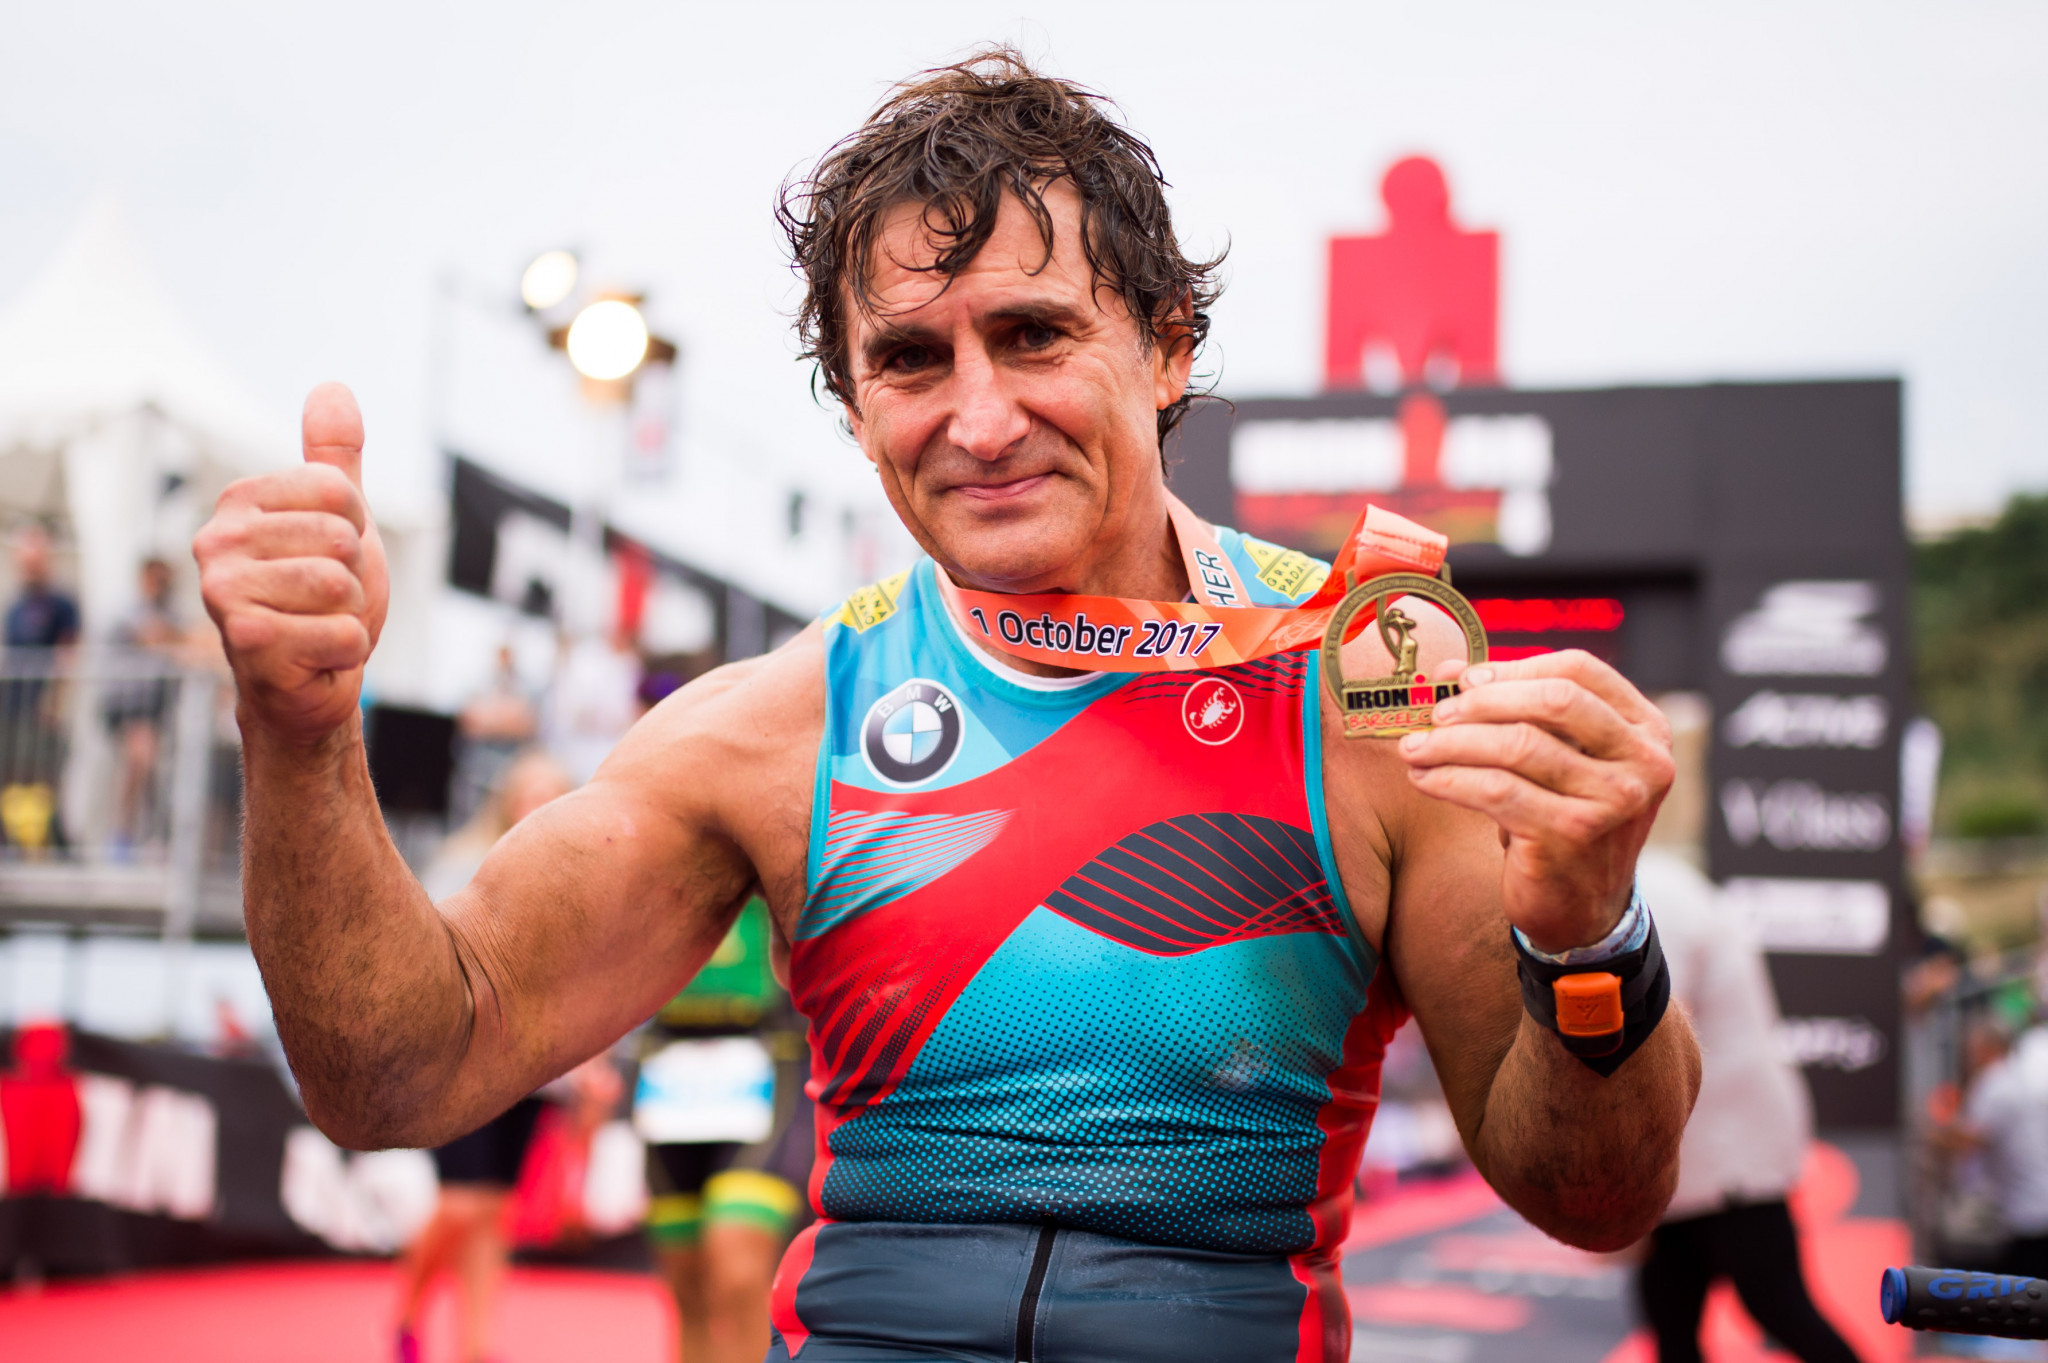 Paralympic champion Zanardi has brain surgery for second time after crash